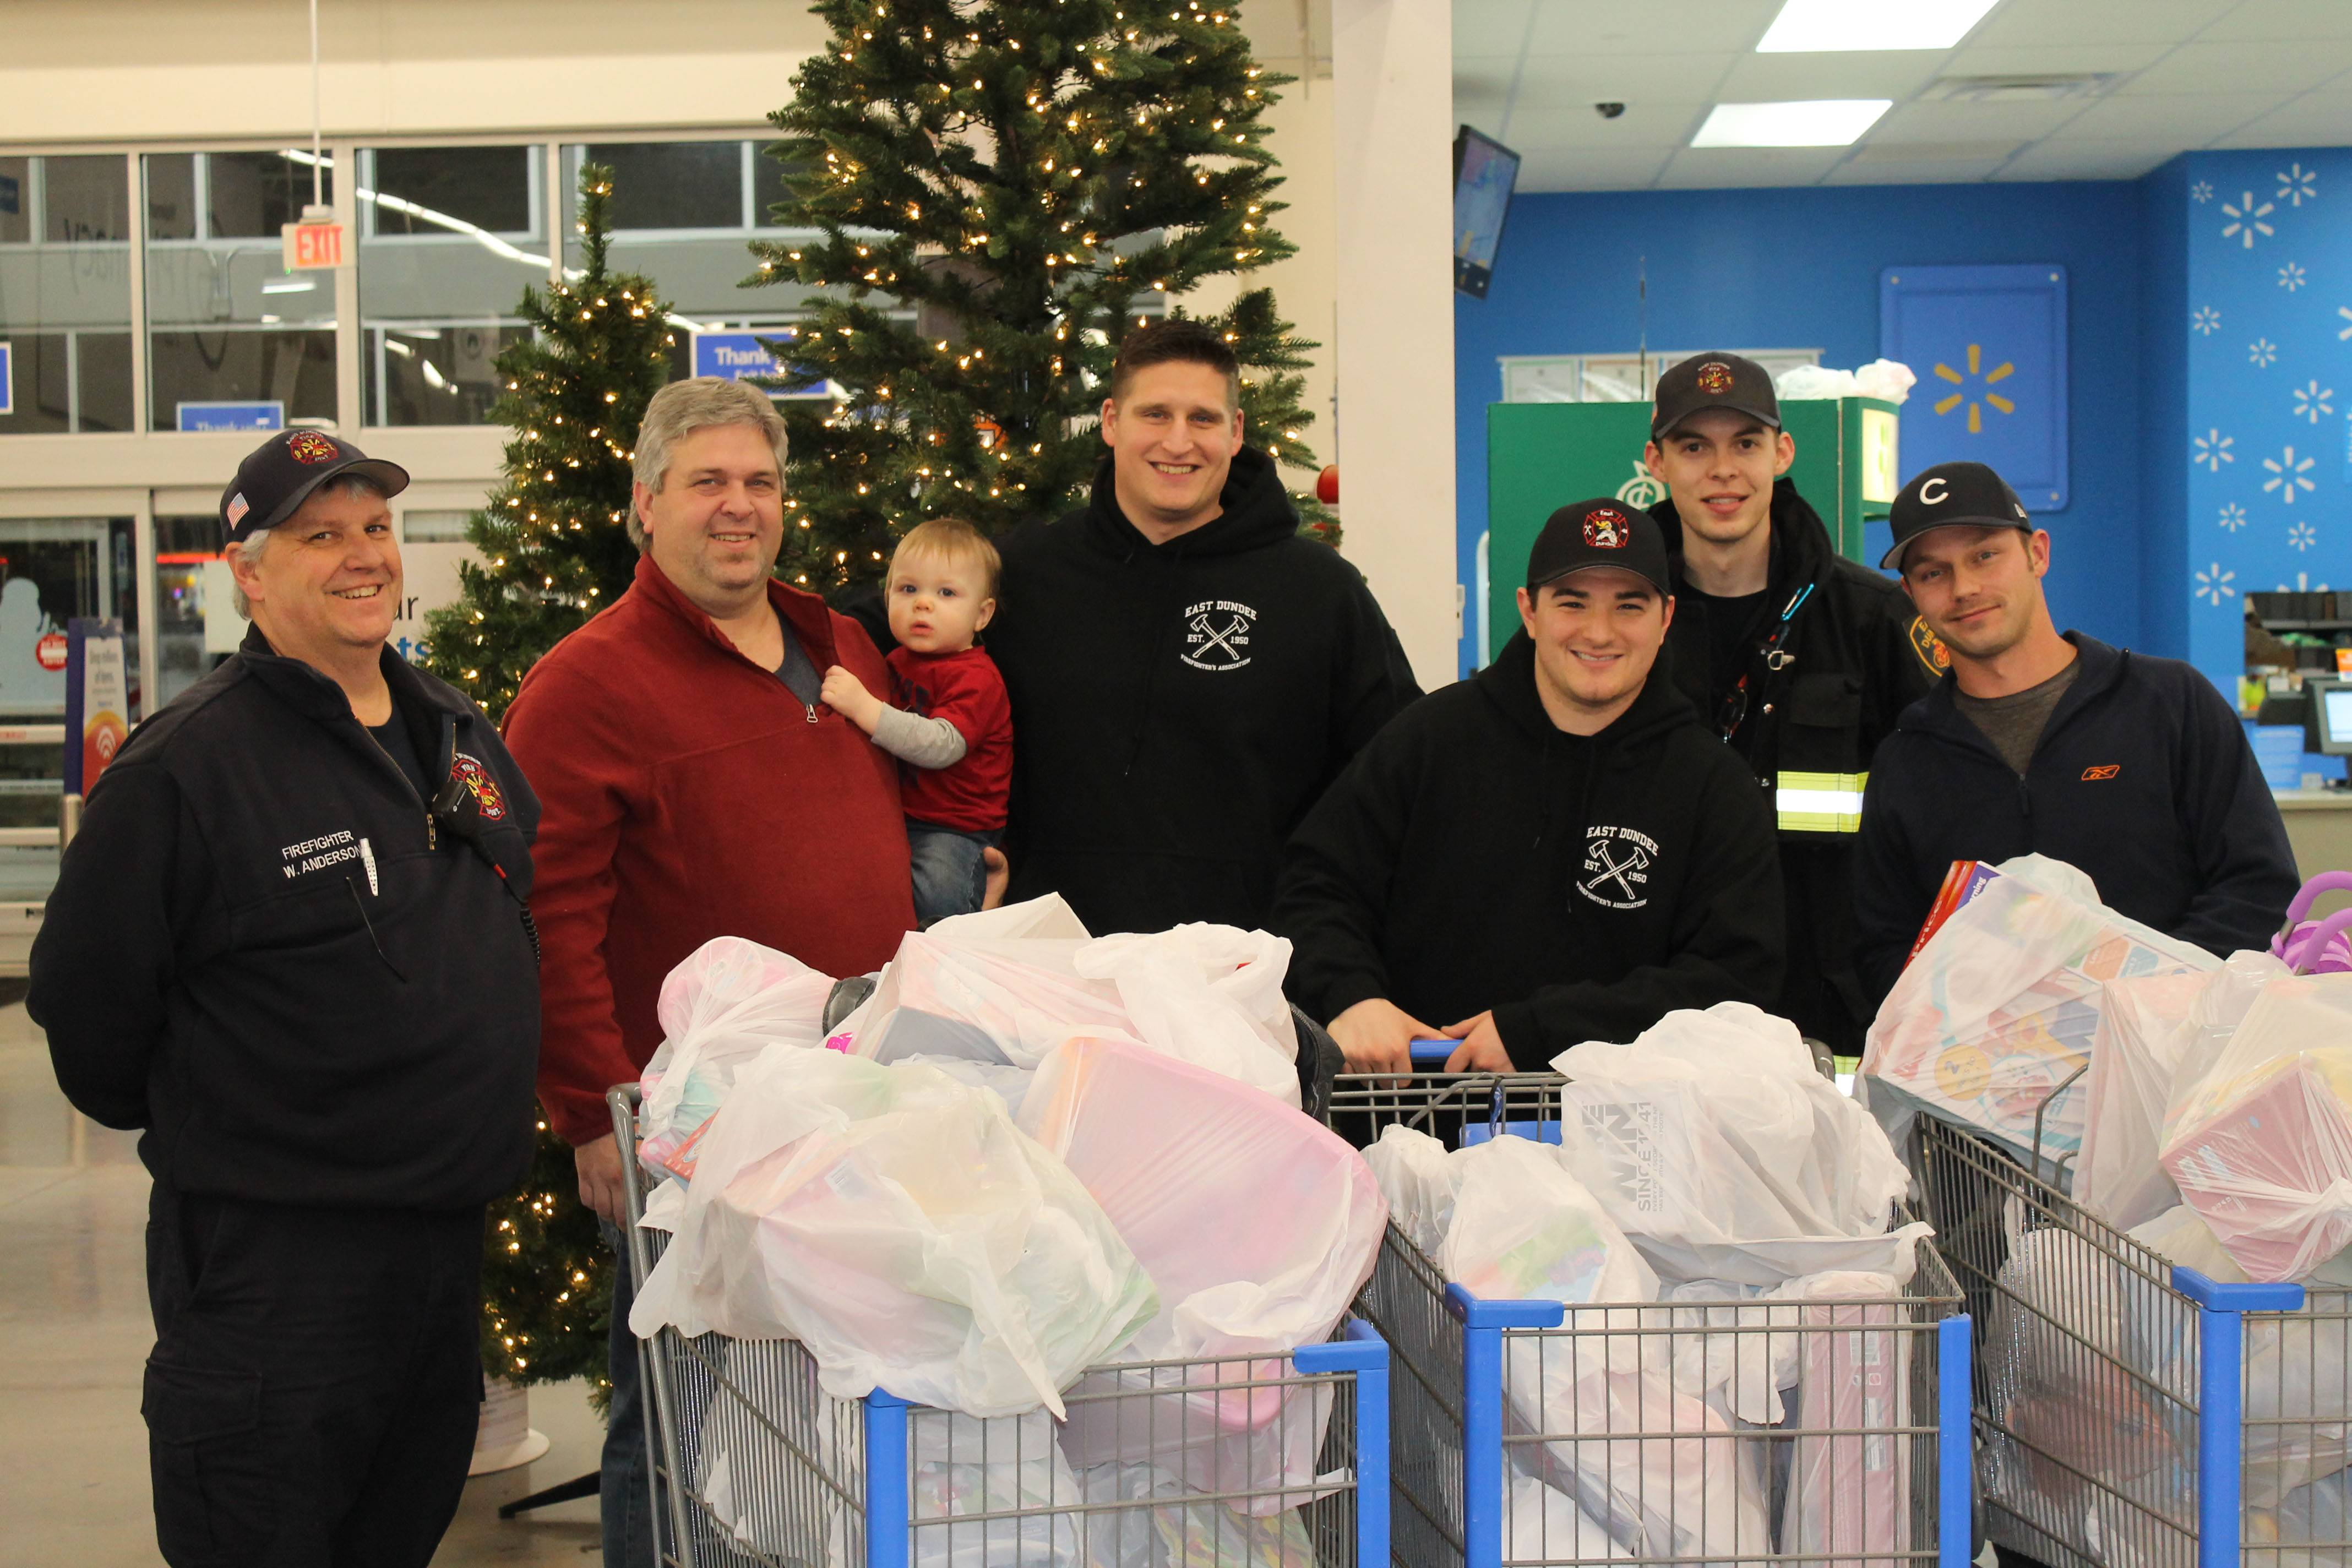 Members of the East Dundee Firefighters' Association continued their annual tradition of buying Christmas presents for Dundee Township children whose families cannot afford gifts. The toy drive is supported by the association's November meat raffle.